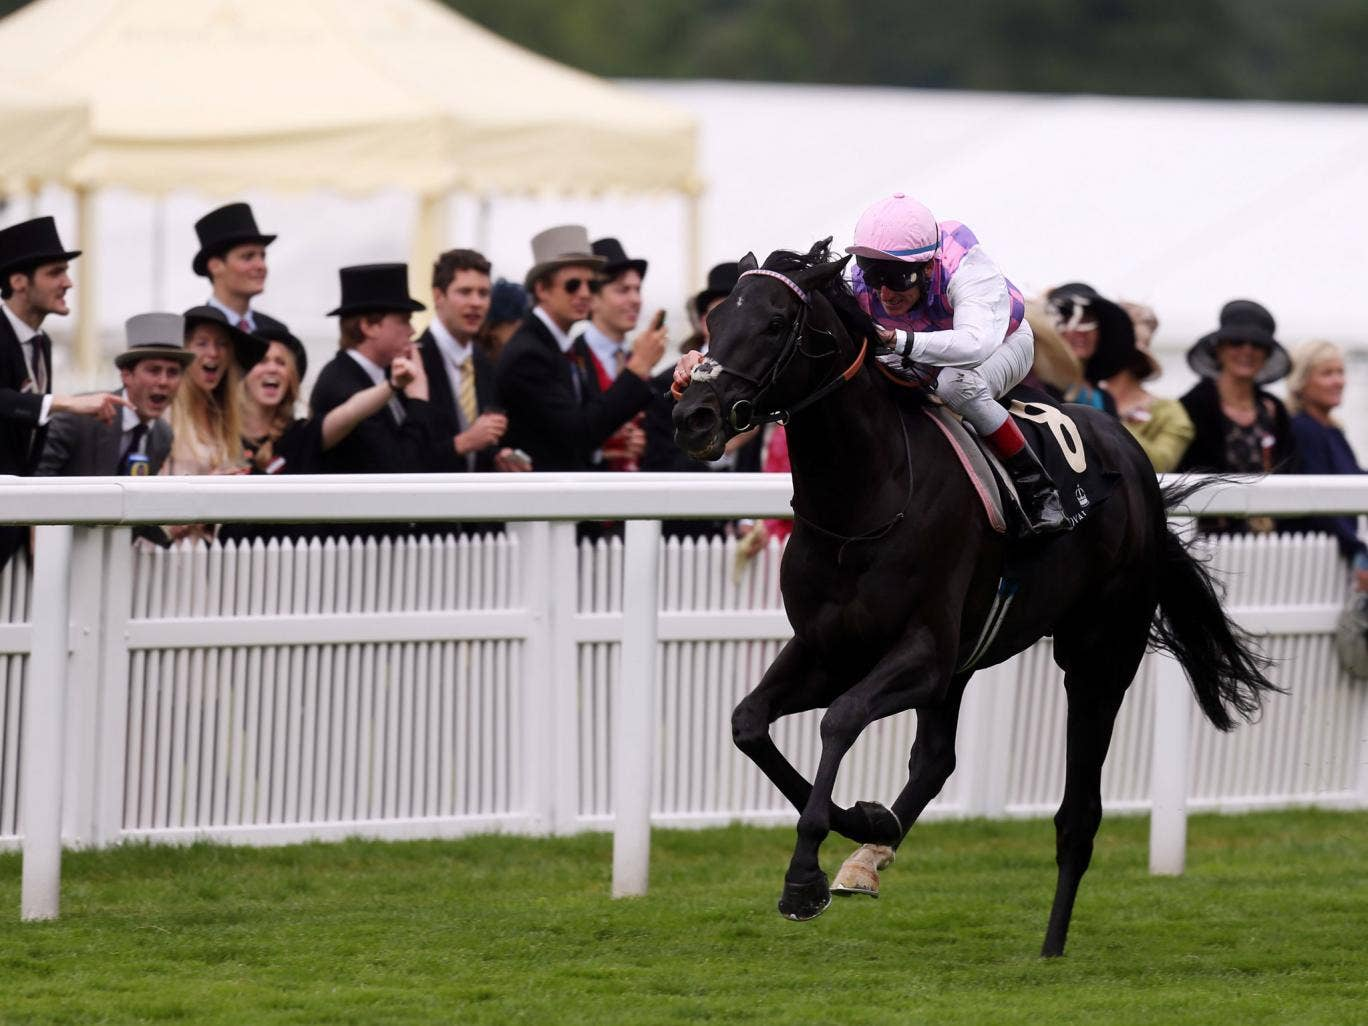 Johnny Murtagh's mount Thomas Chippendale races to victory in the Hardwicke Stakes only to collapse and die shortly